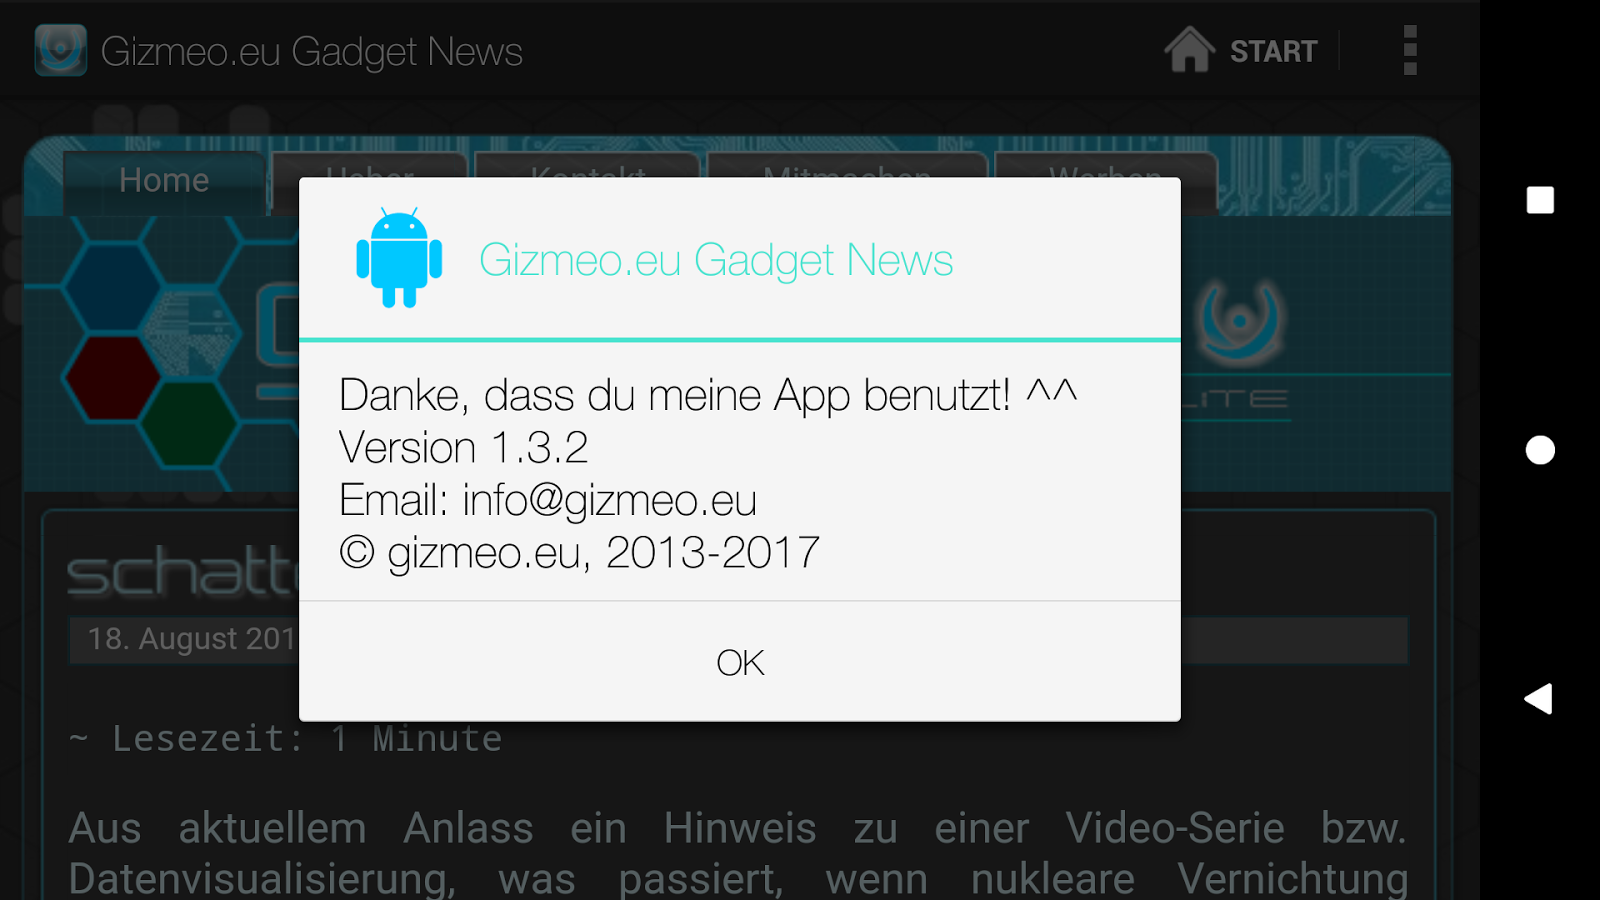 Gizmeo.eu Gadget News- screenshot